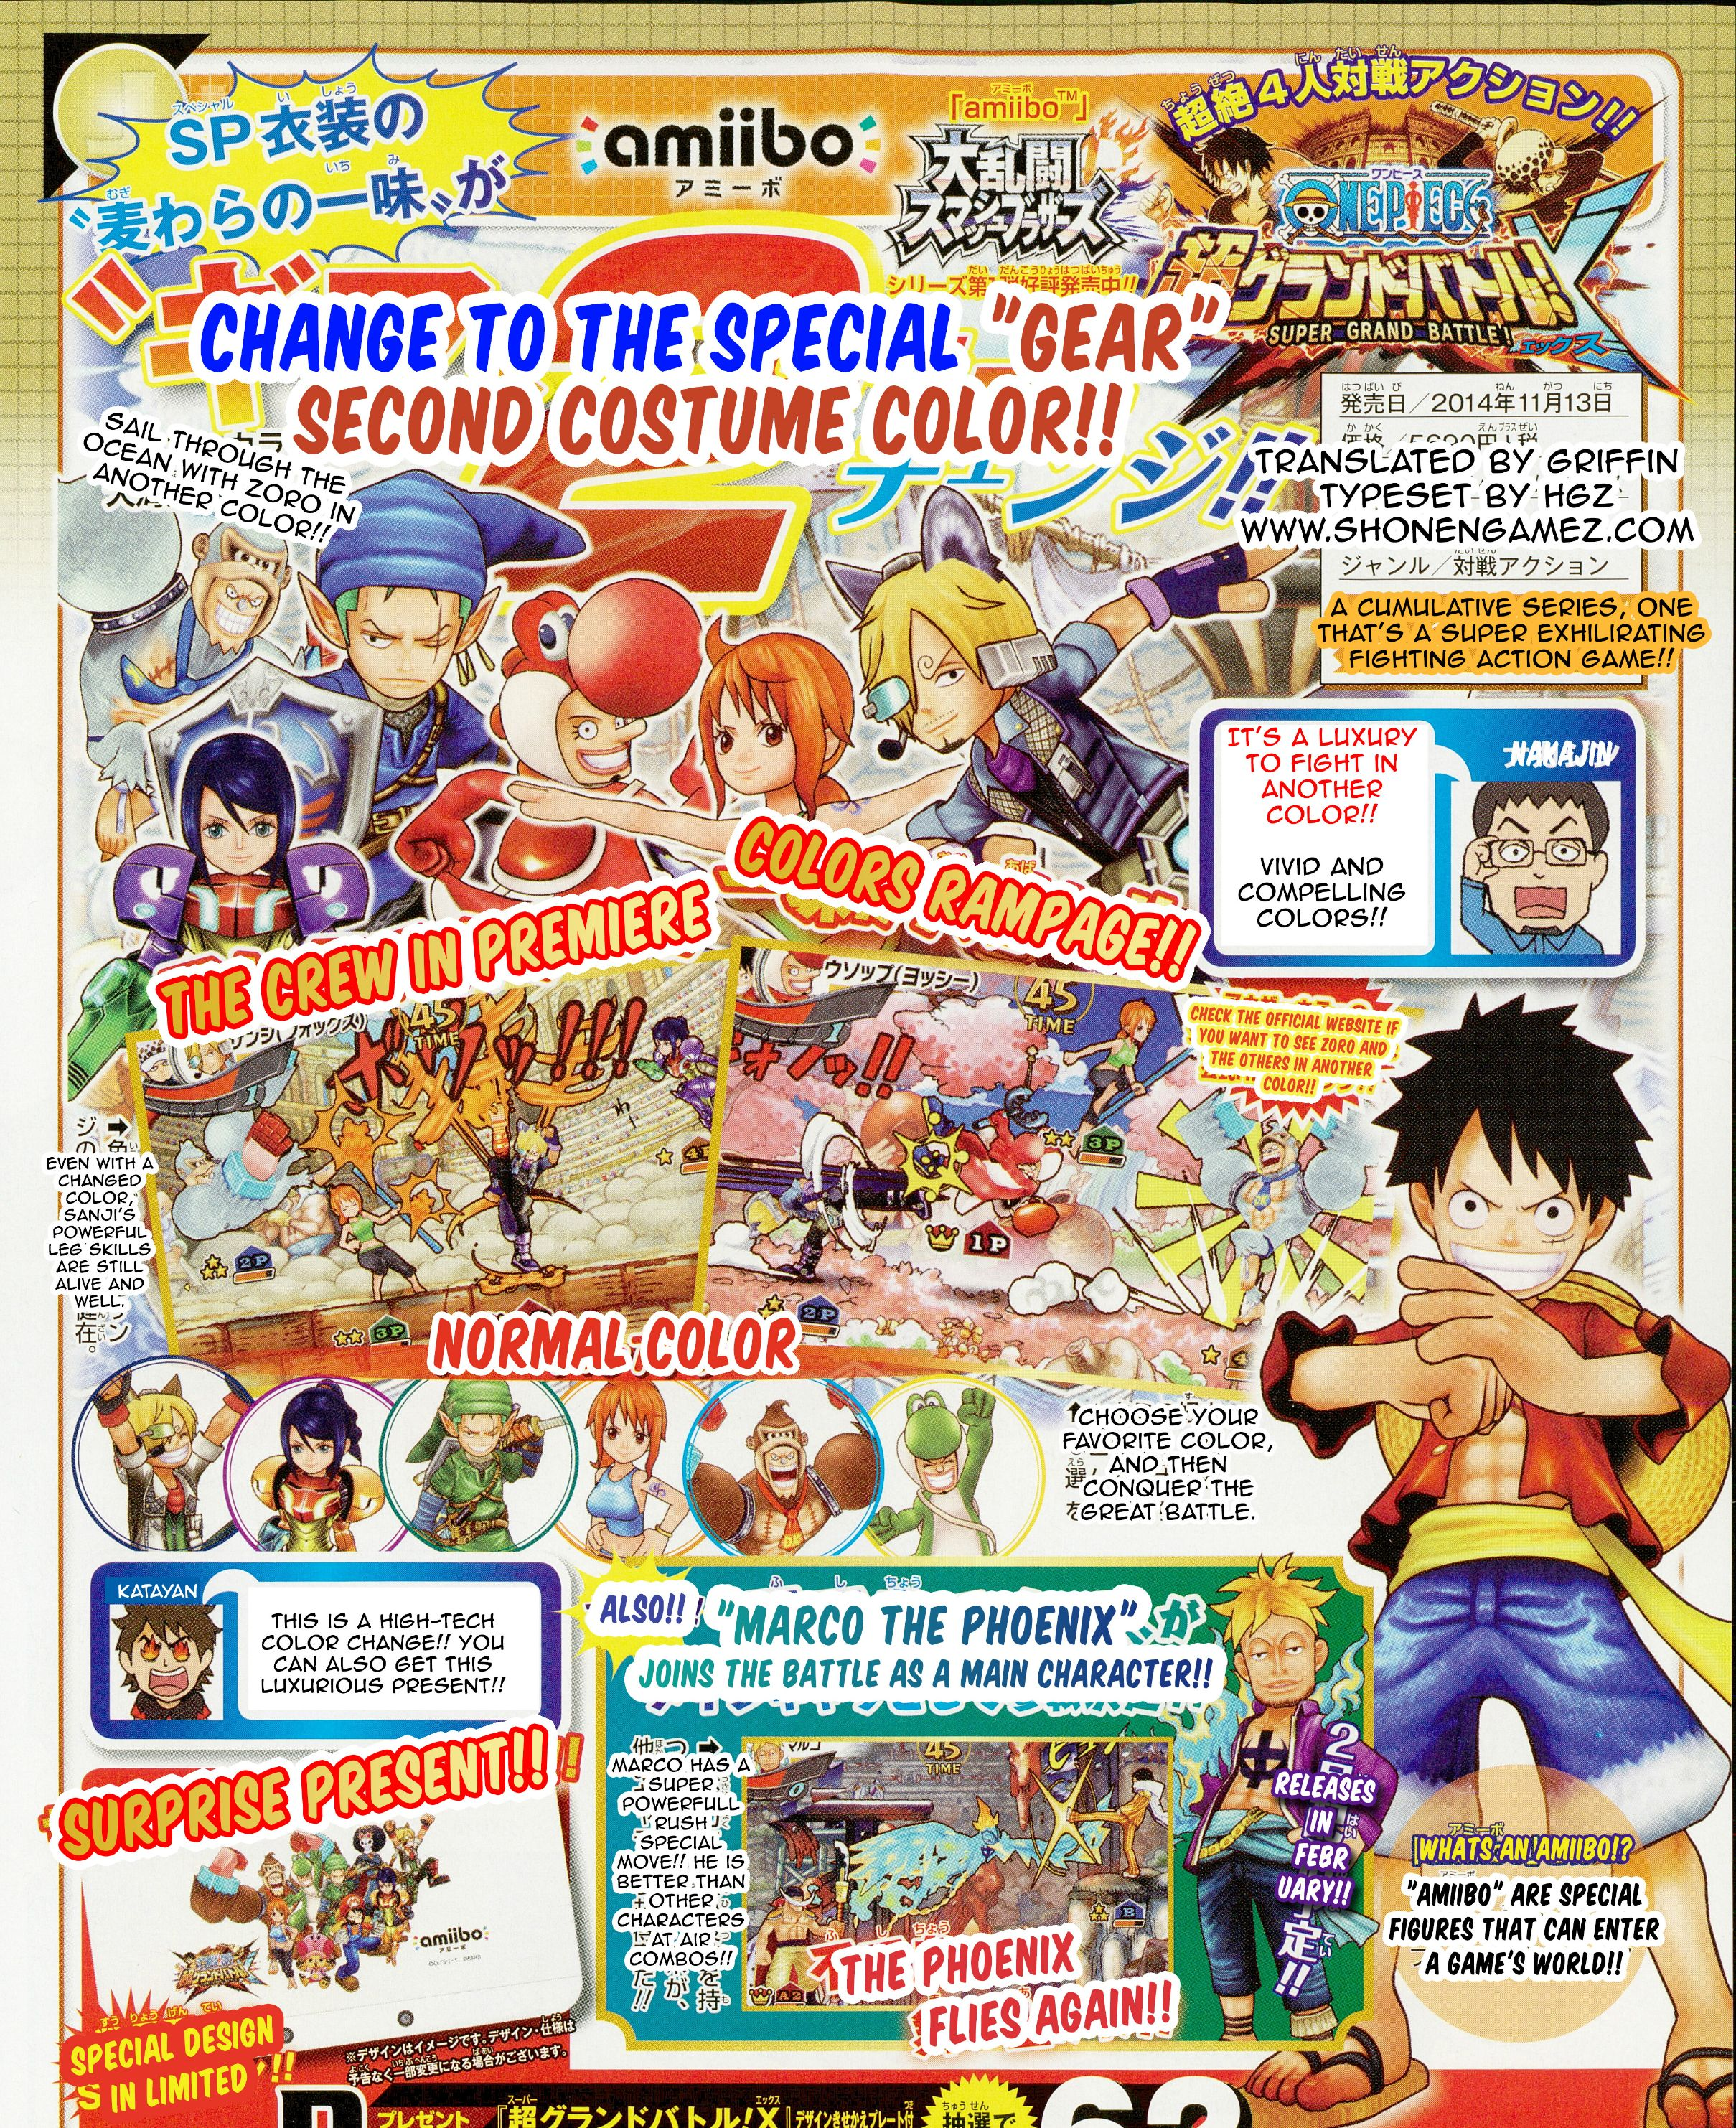 One Piece Super Grand Battle X: One Piece: Super Grand Battle! X Scan Reveals Marco The